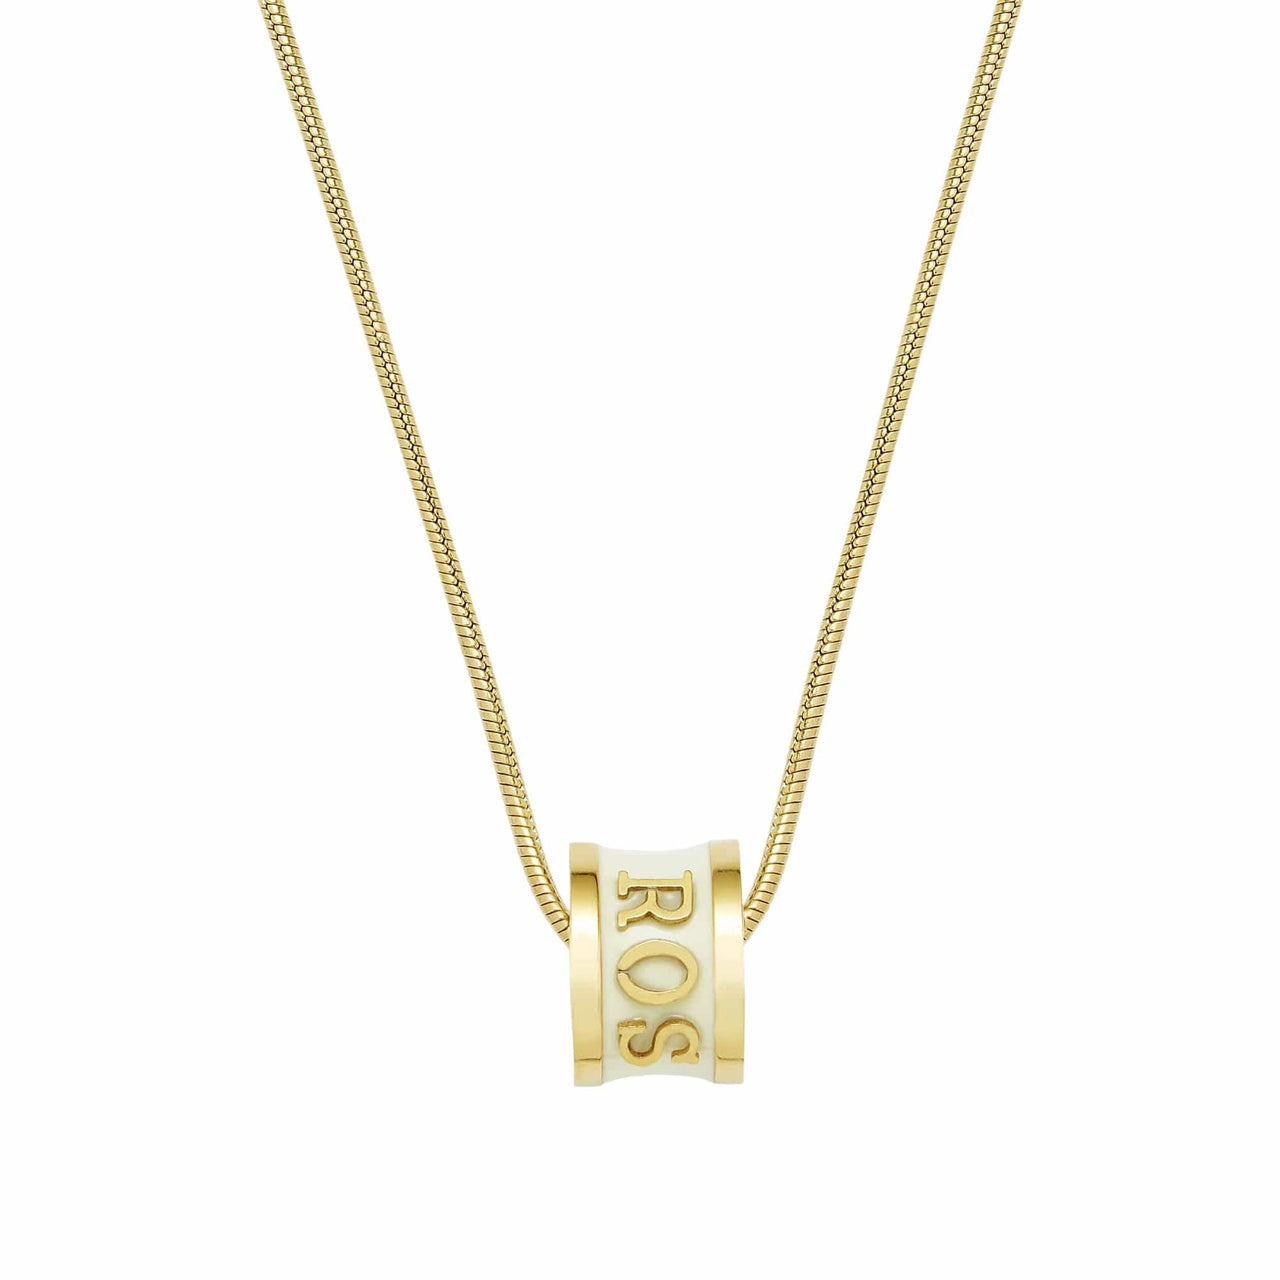 Florence London Necklaces Cream with 18ct Gold Trim Signature Necklace Personalized with Names and Dates